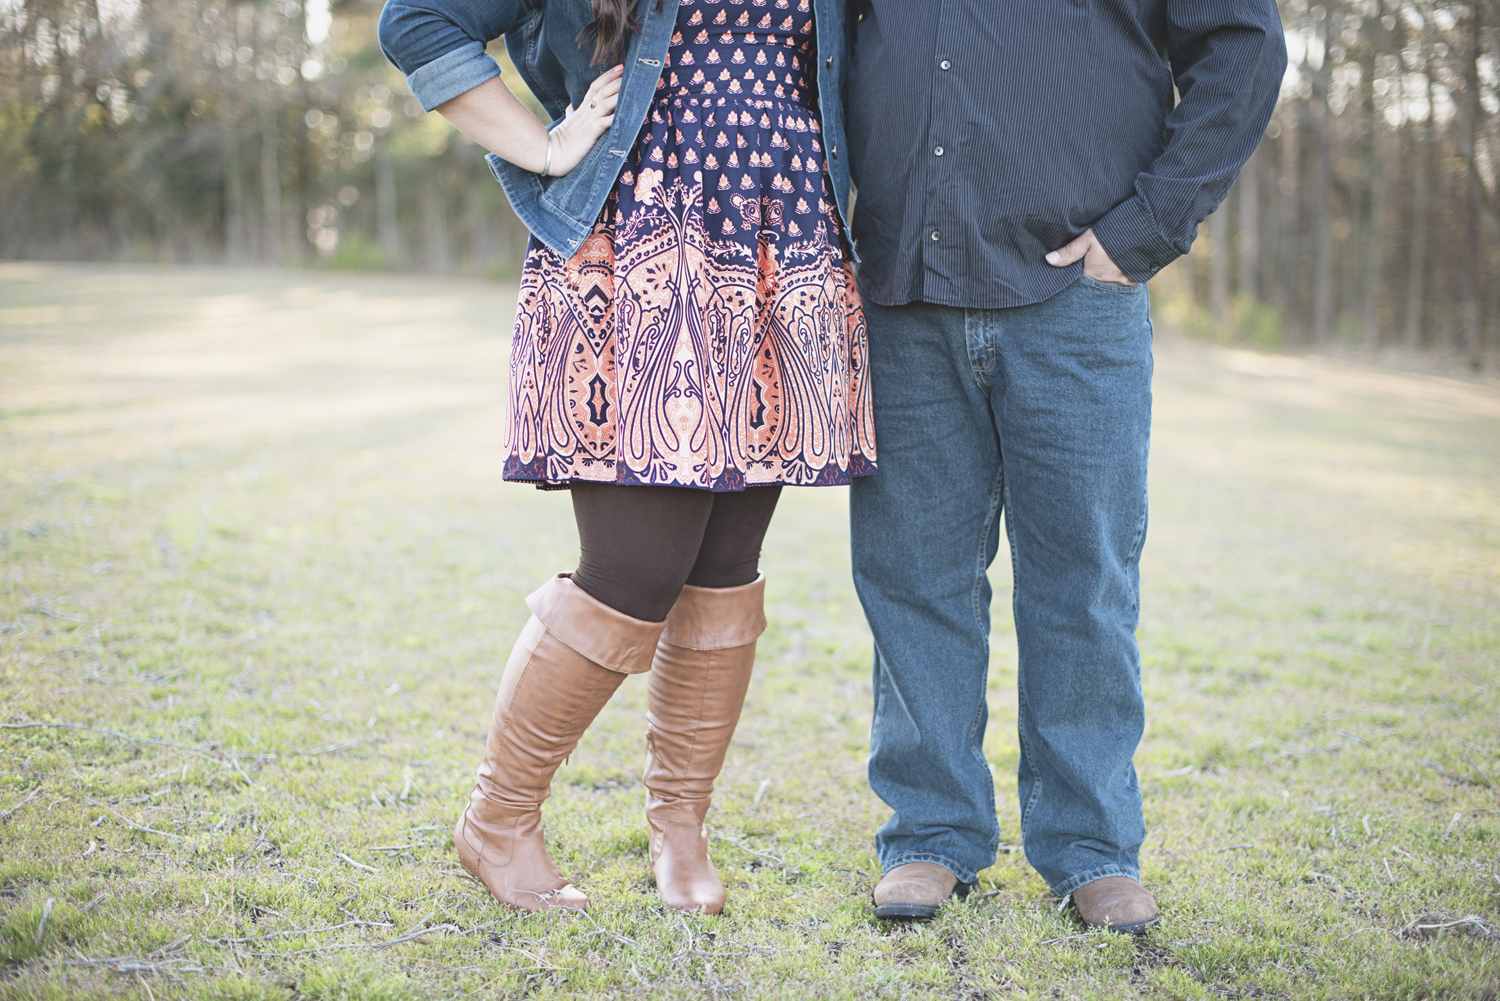 Coral and navy dress | Fall brown boots | Engagement session outfit idea